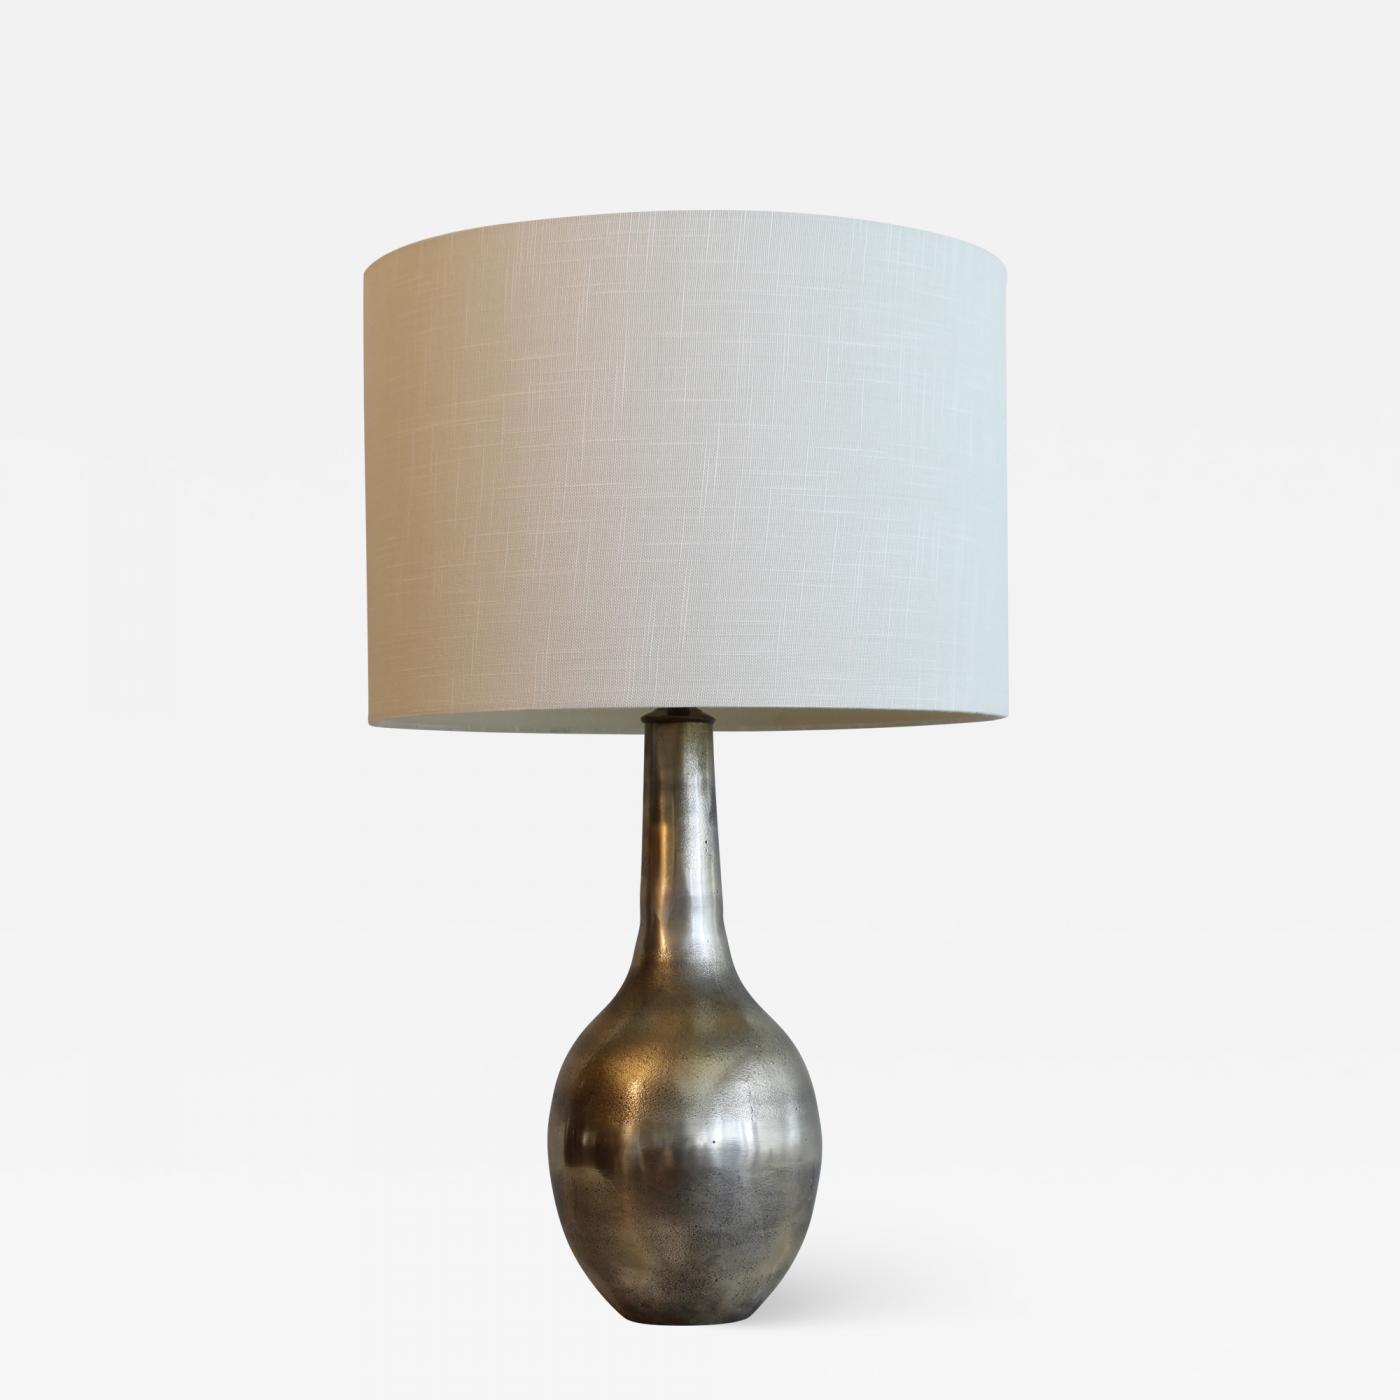 Hand Nickel Beautiful Table Lamp Forged rChtsxQd